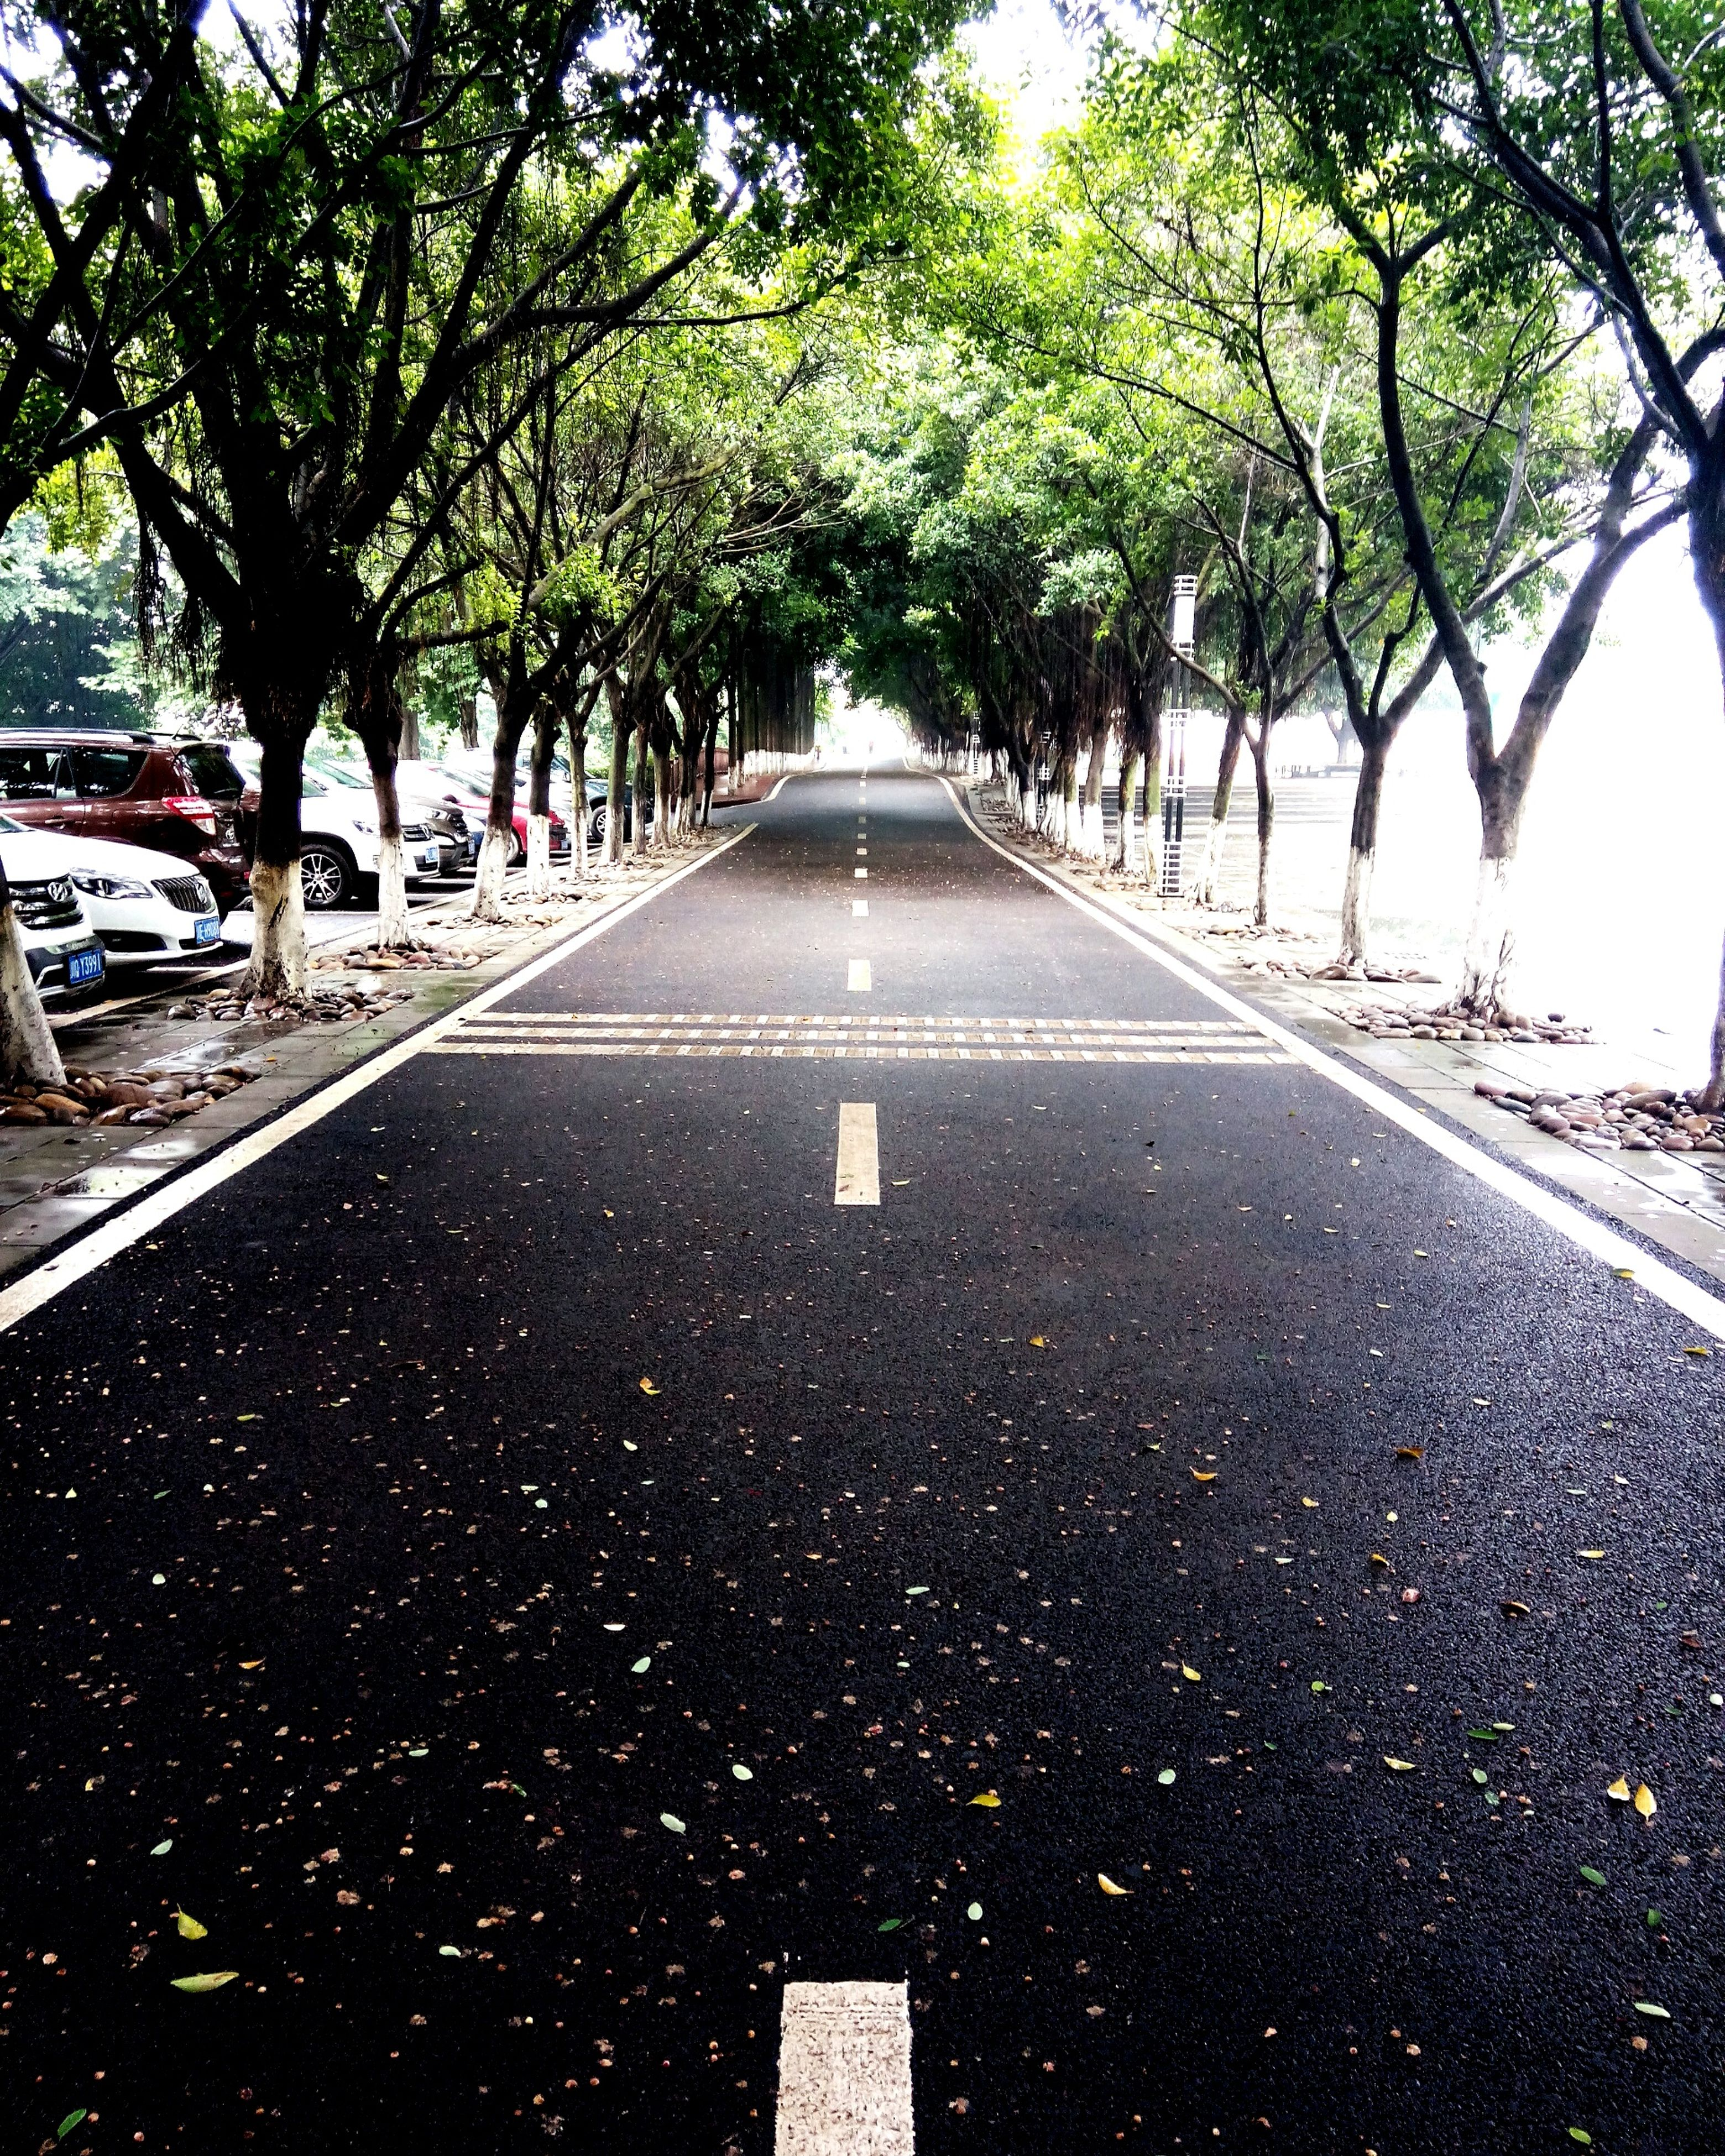 the way forward, transportation, tree, diminishing perspective, vanishing point, road, road marking, street, car, mode of transport, treelined, land vehicle, asphalt, empty, growth, day, outdoors, empty road, city, no people